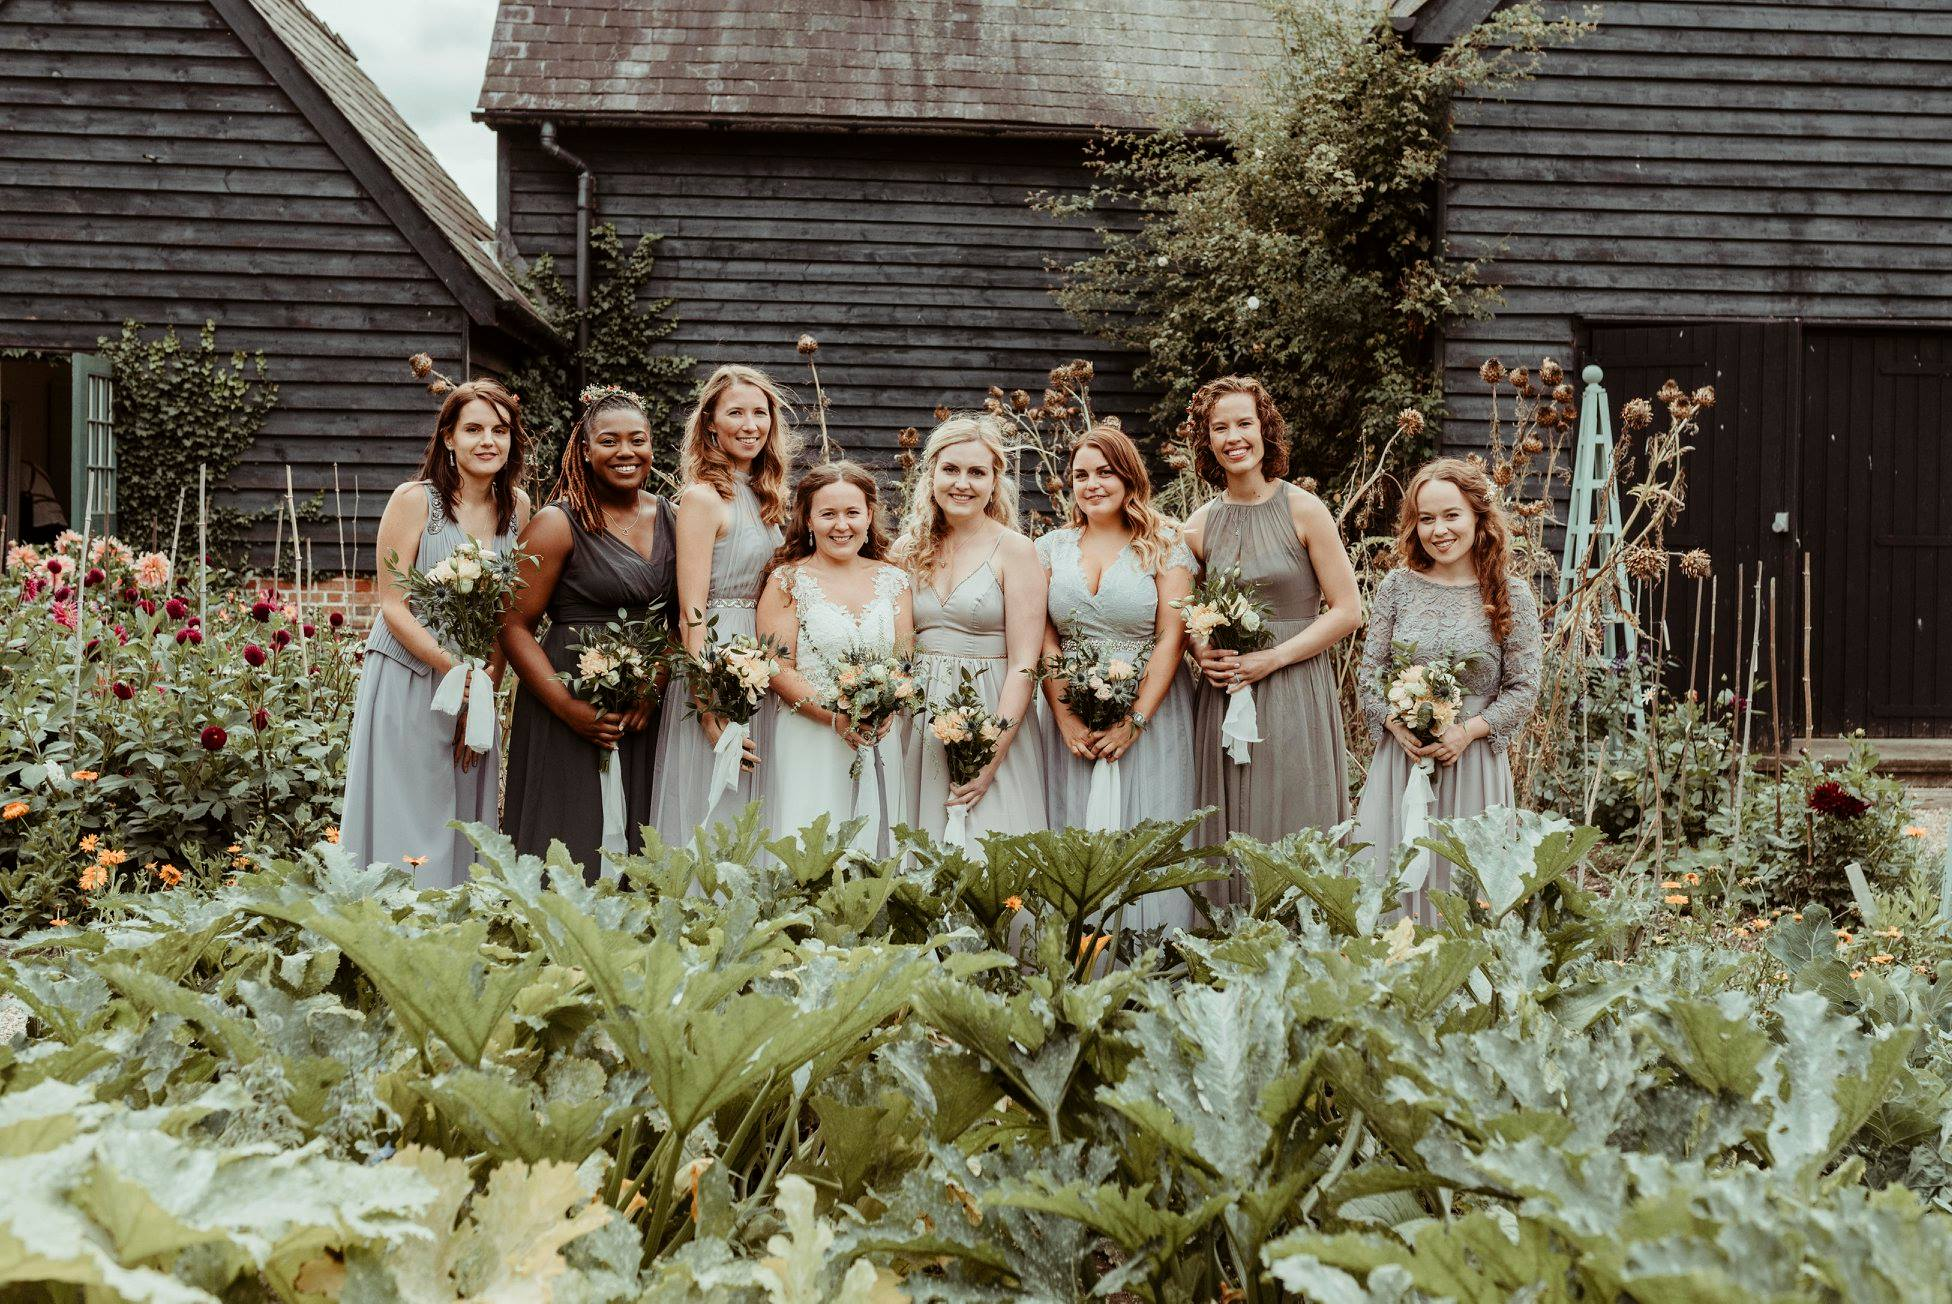 Grey Bridesmaid Dresses.jpg